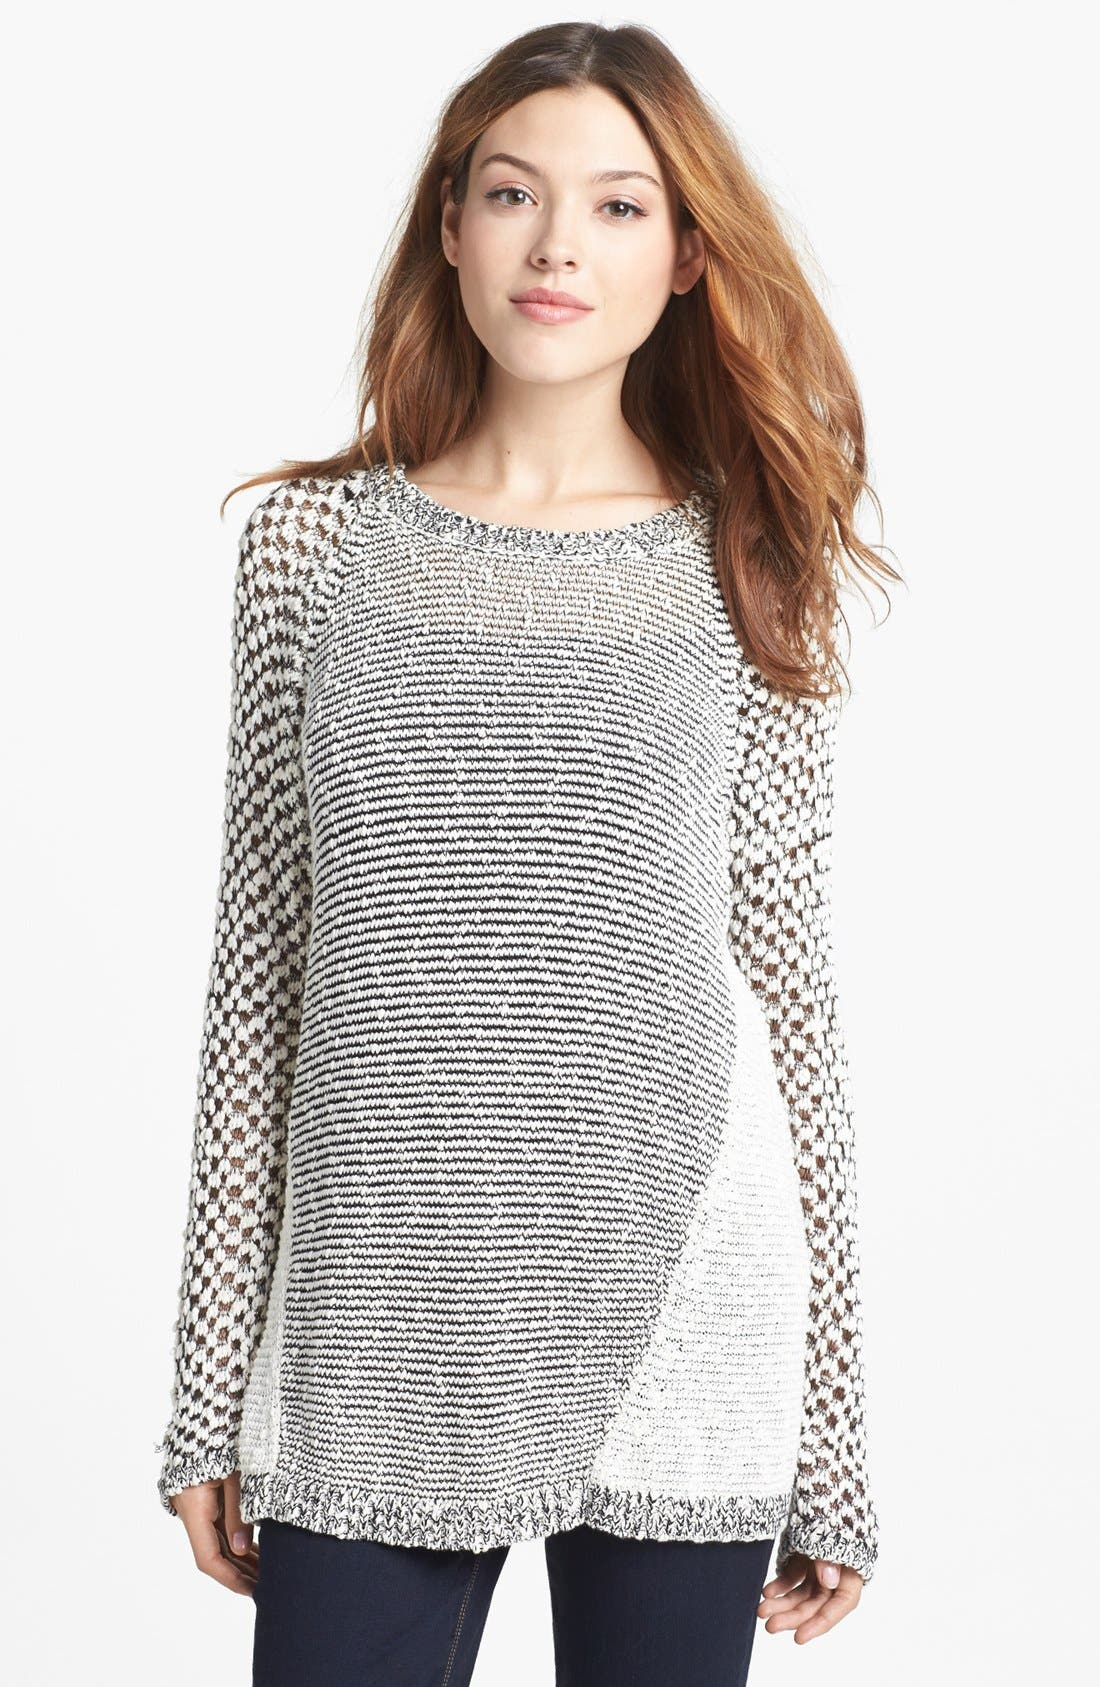 Main Image - Two by Vince Camuto Mixed Stitch Crewneck Sweater (Petite)